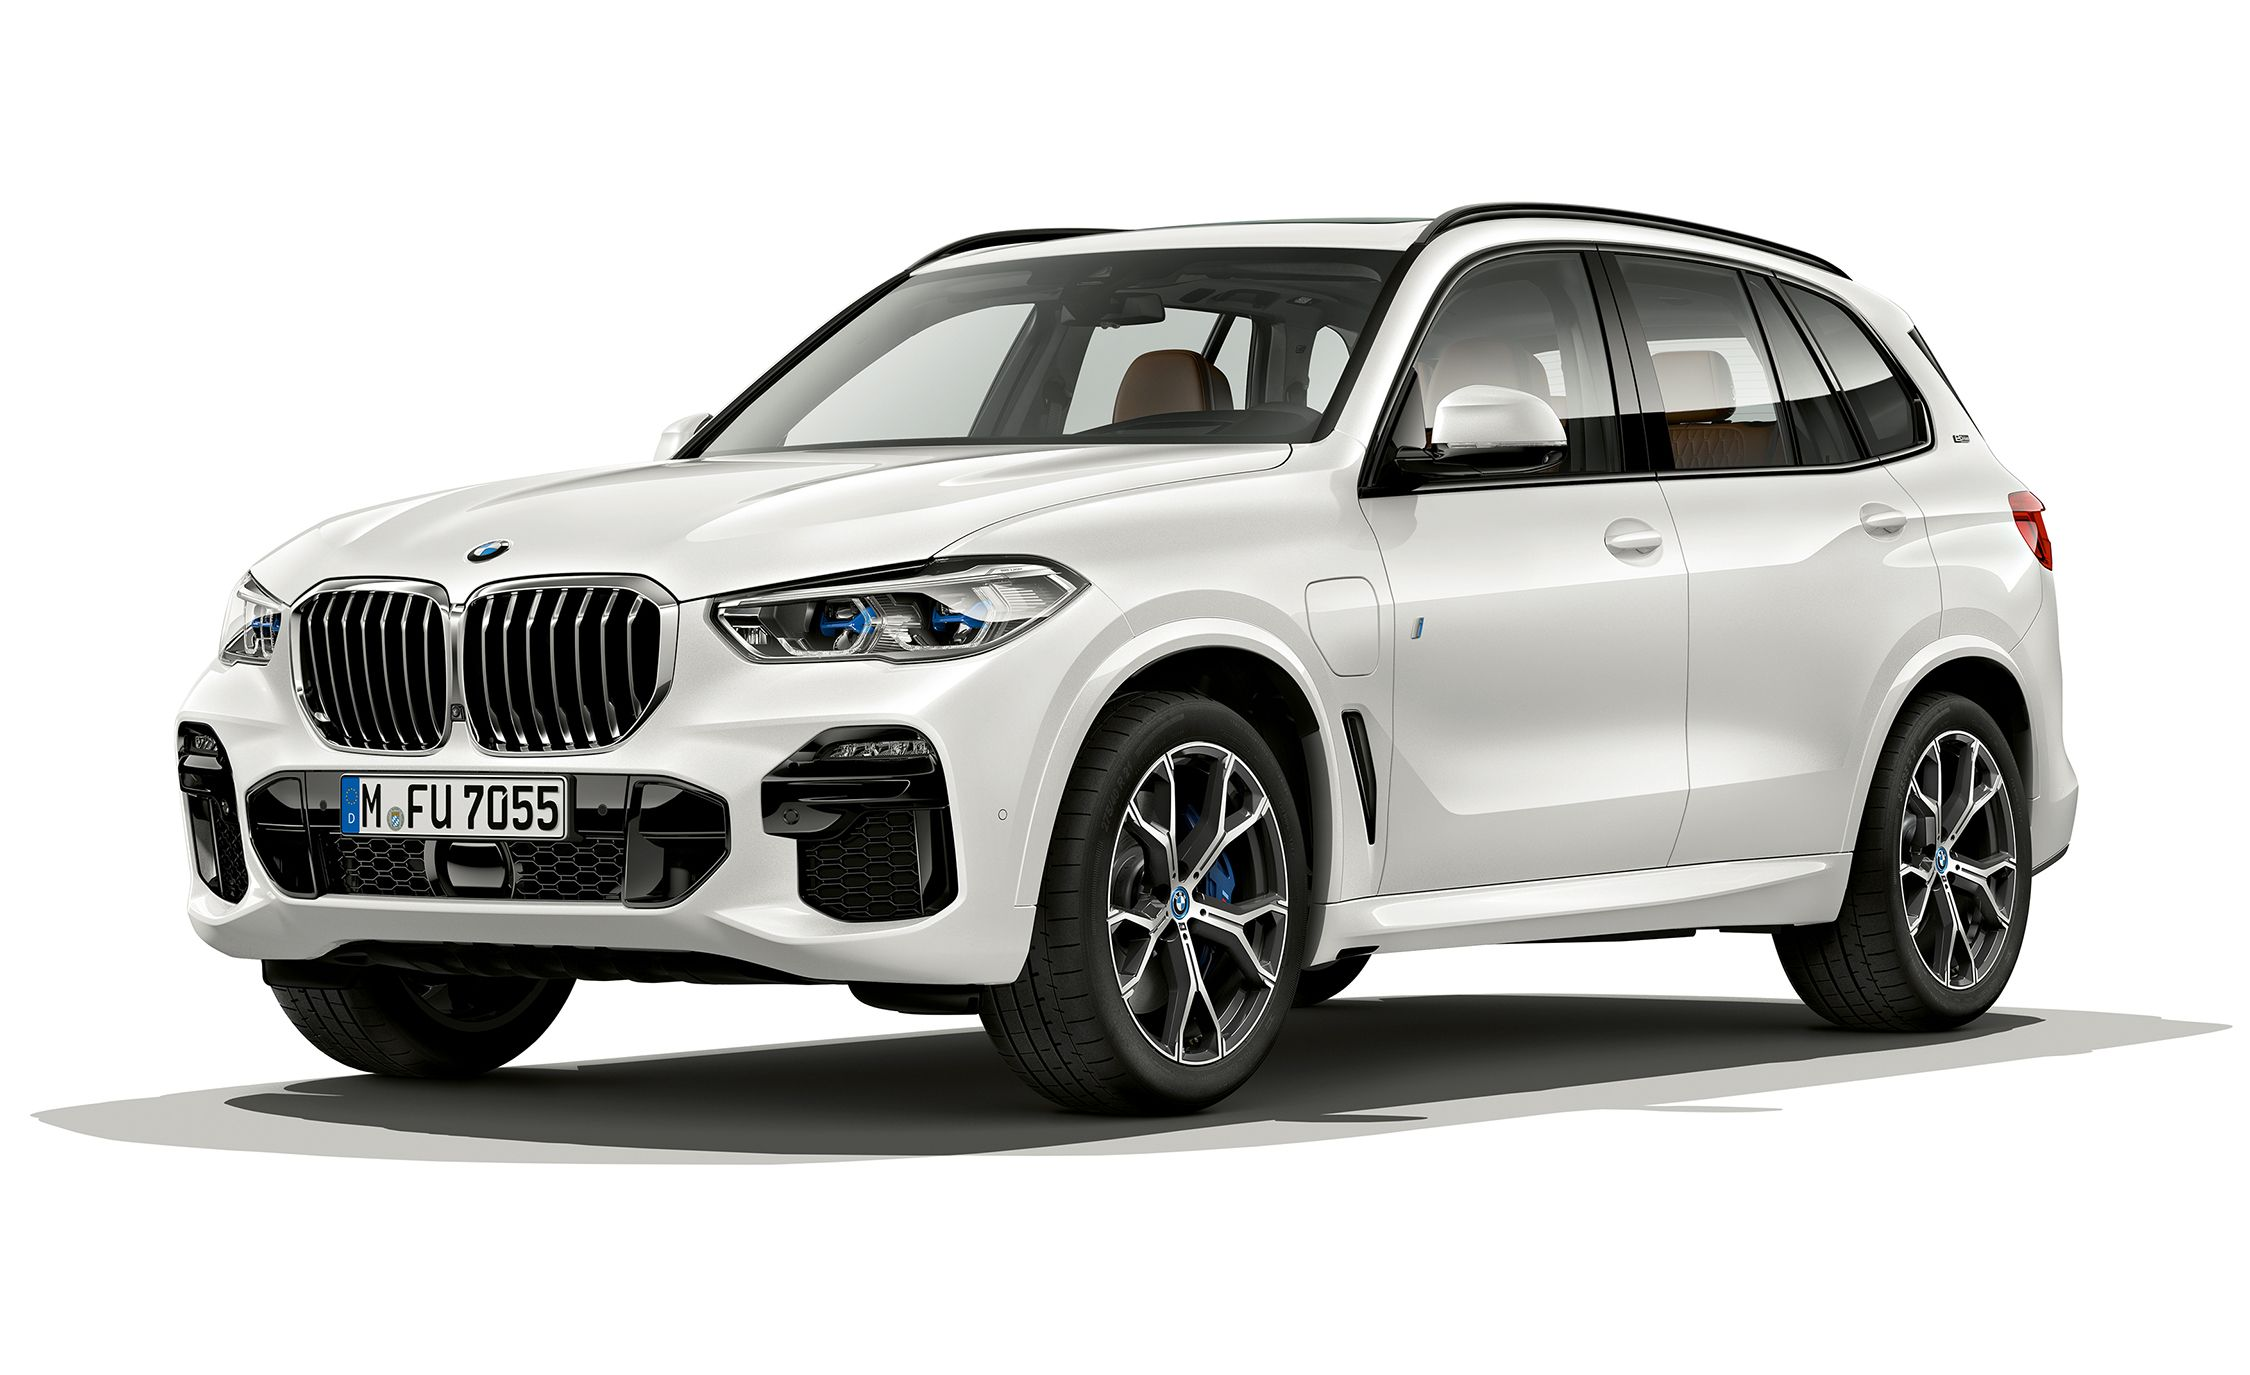 2016 Bmw X5 Xdrive40e Plug In Hybrid Test Review Car And Driver